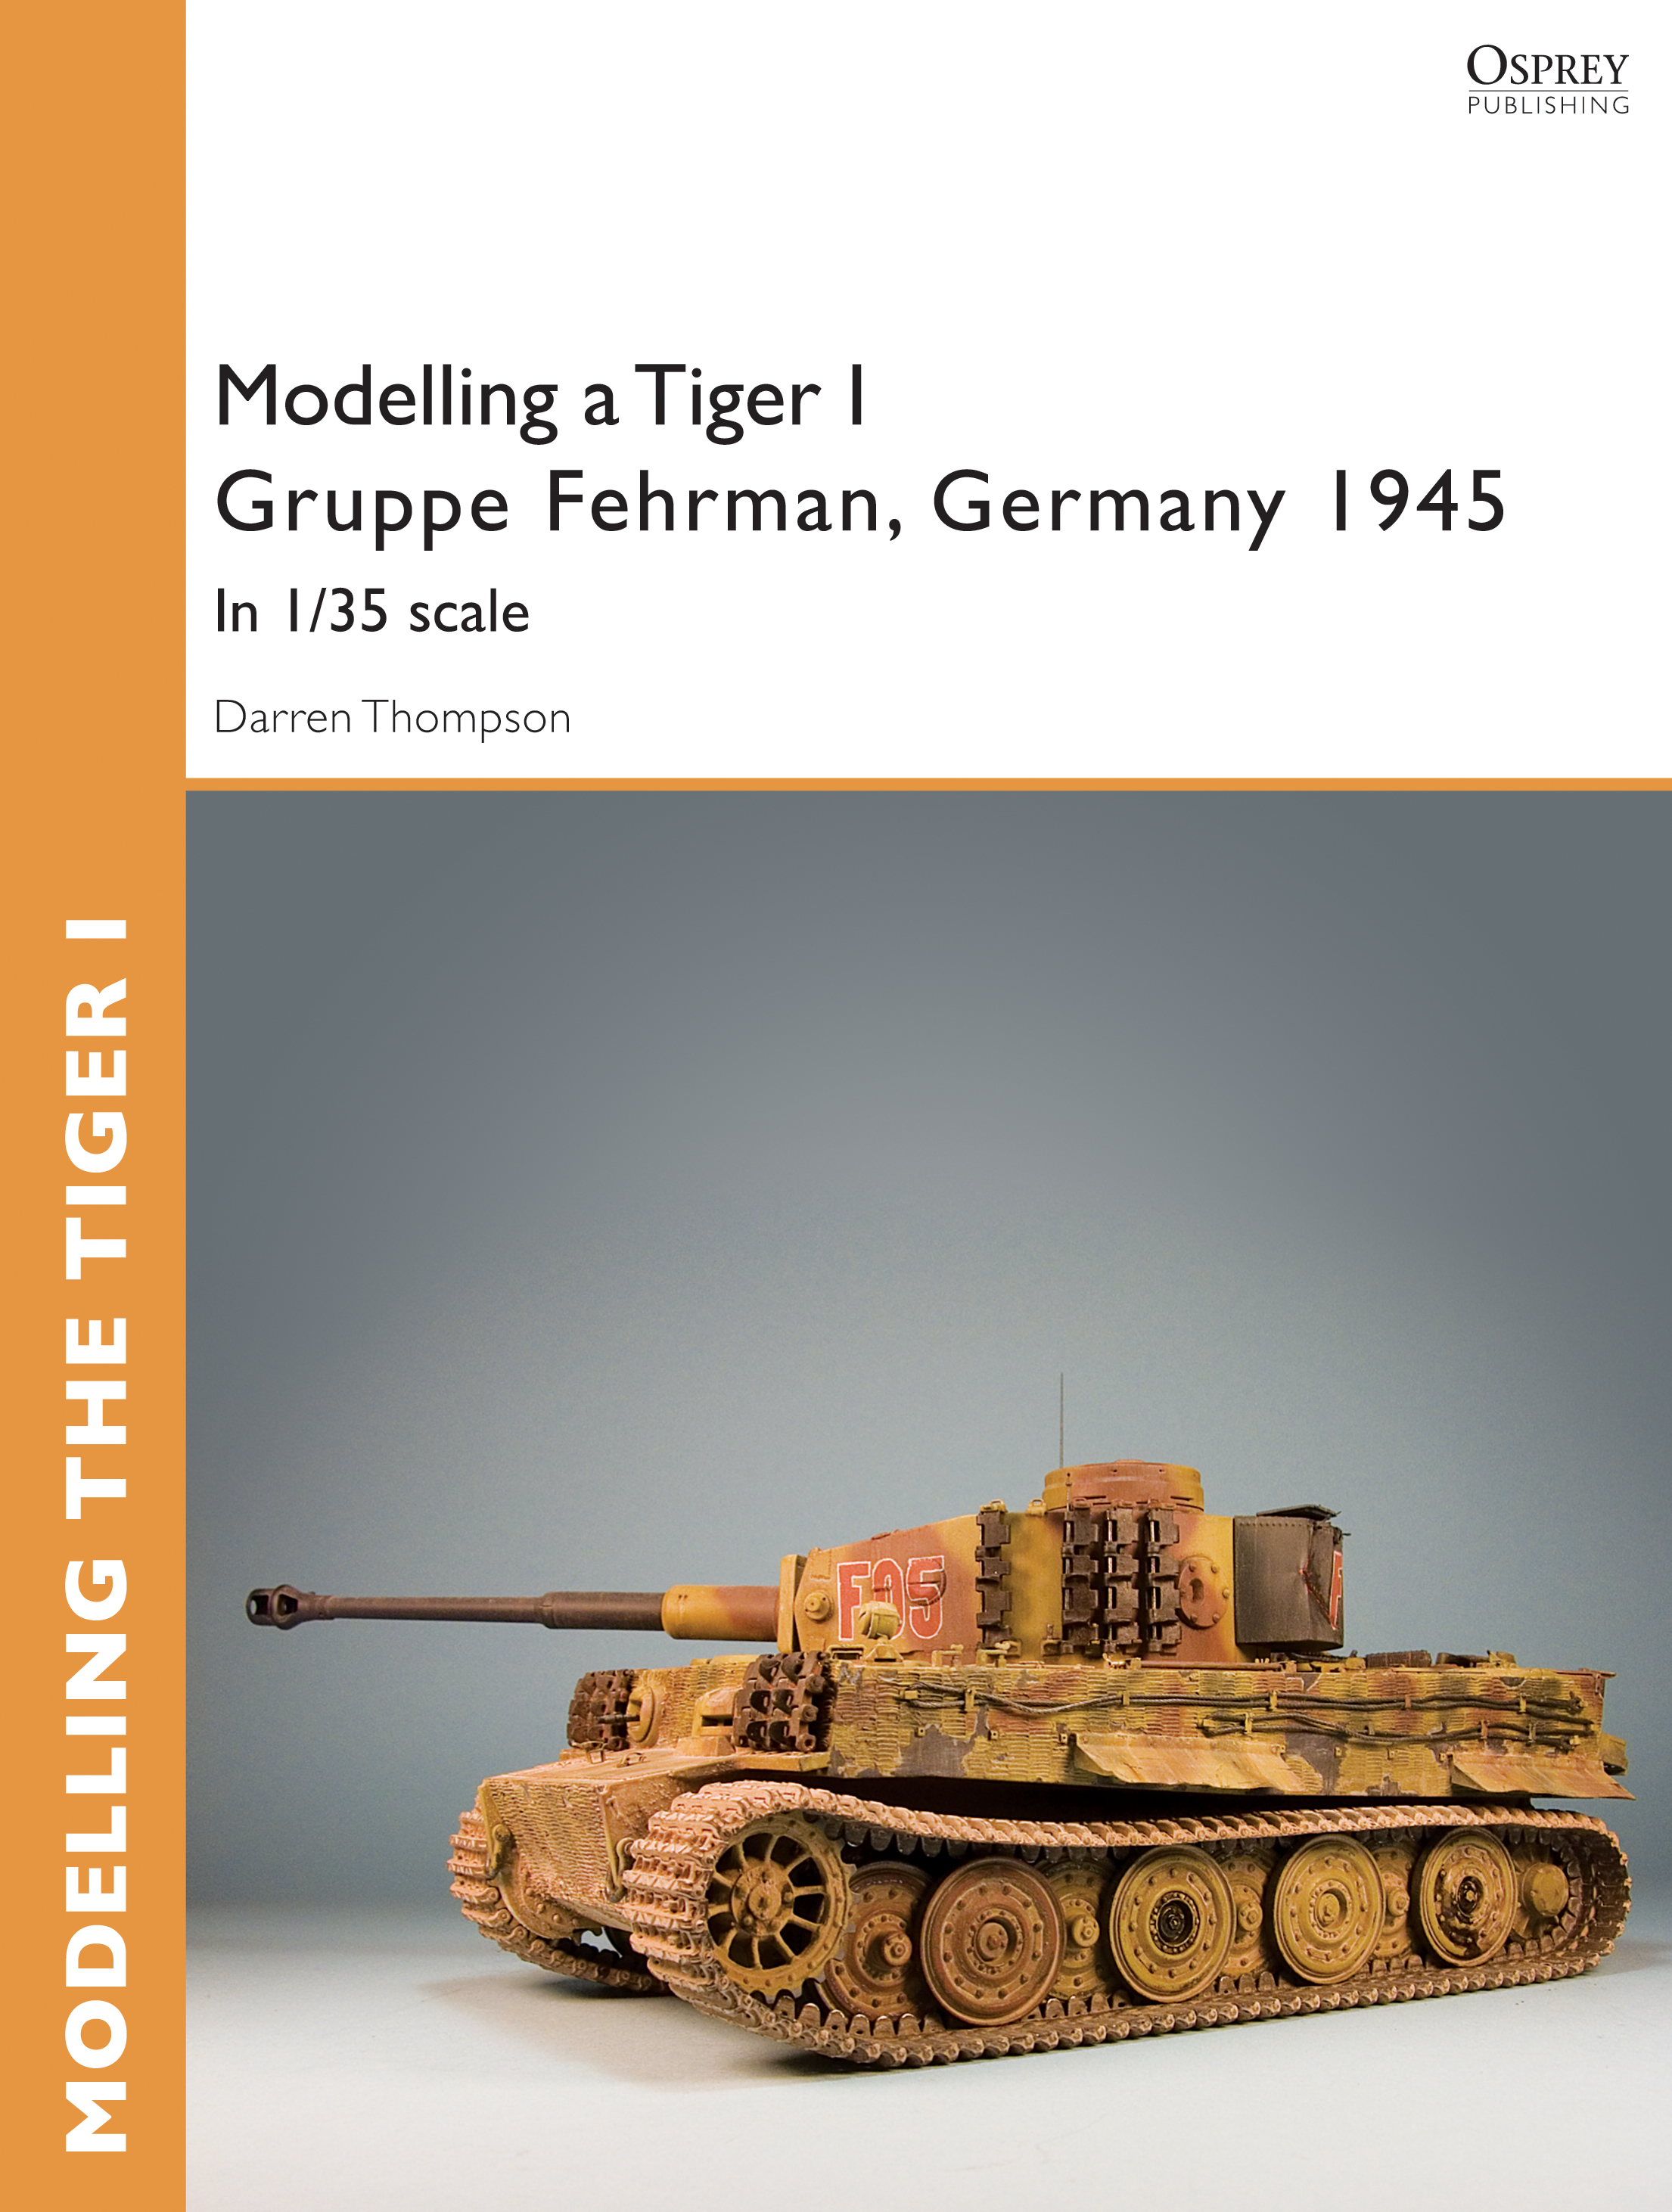 Modelling a Tiger I Gruppe Fehrman,  Germany 1945: In 1/35 scale